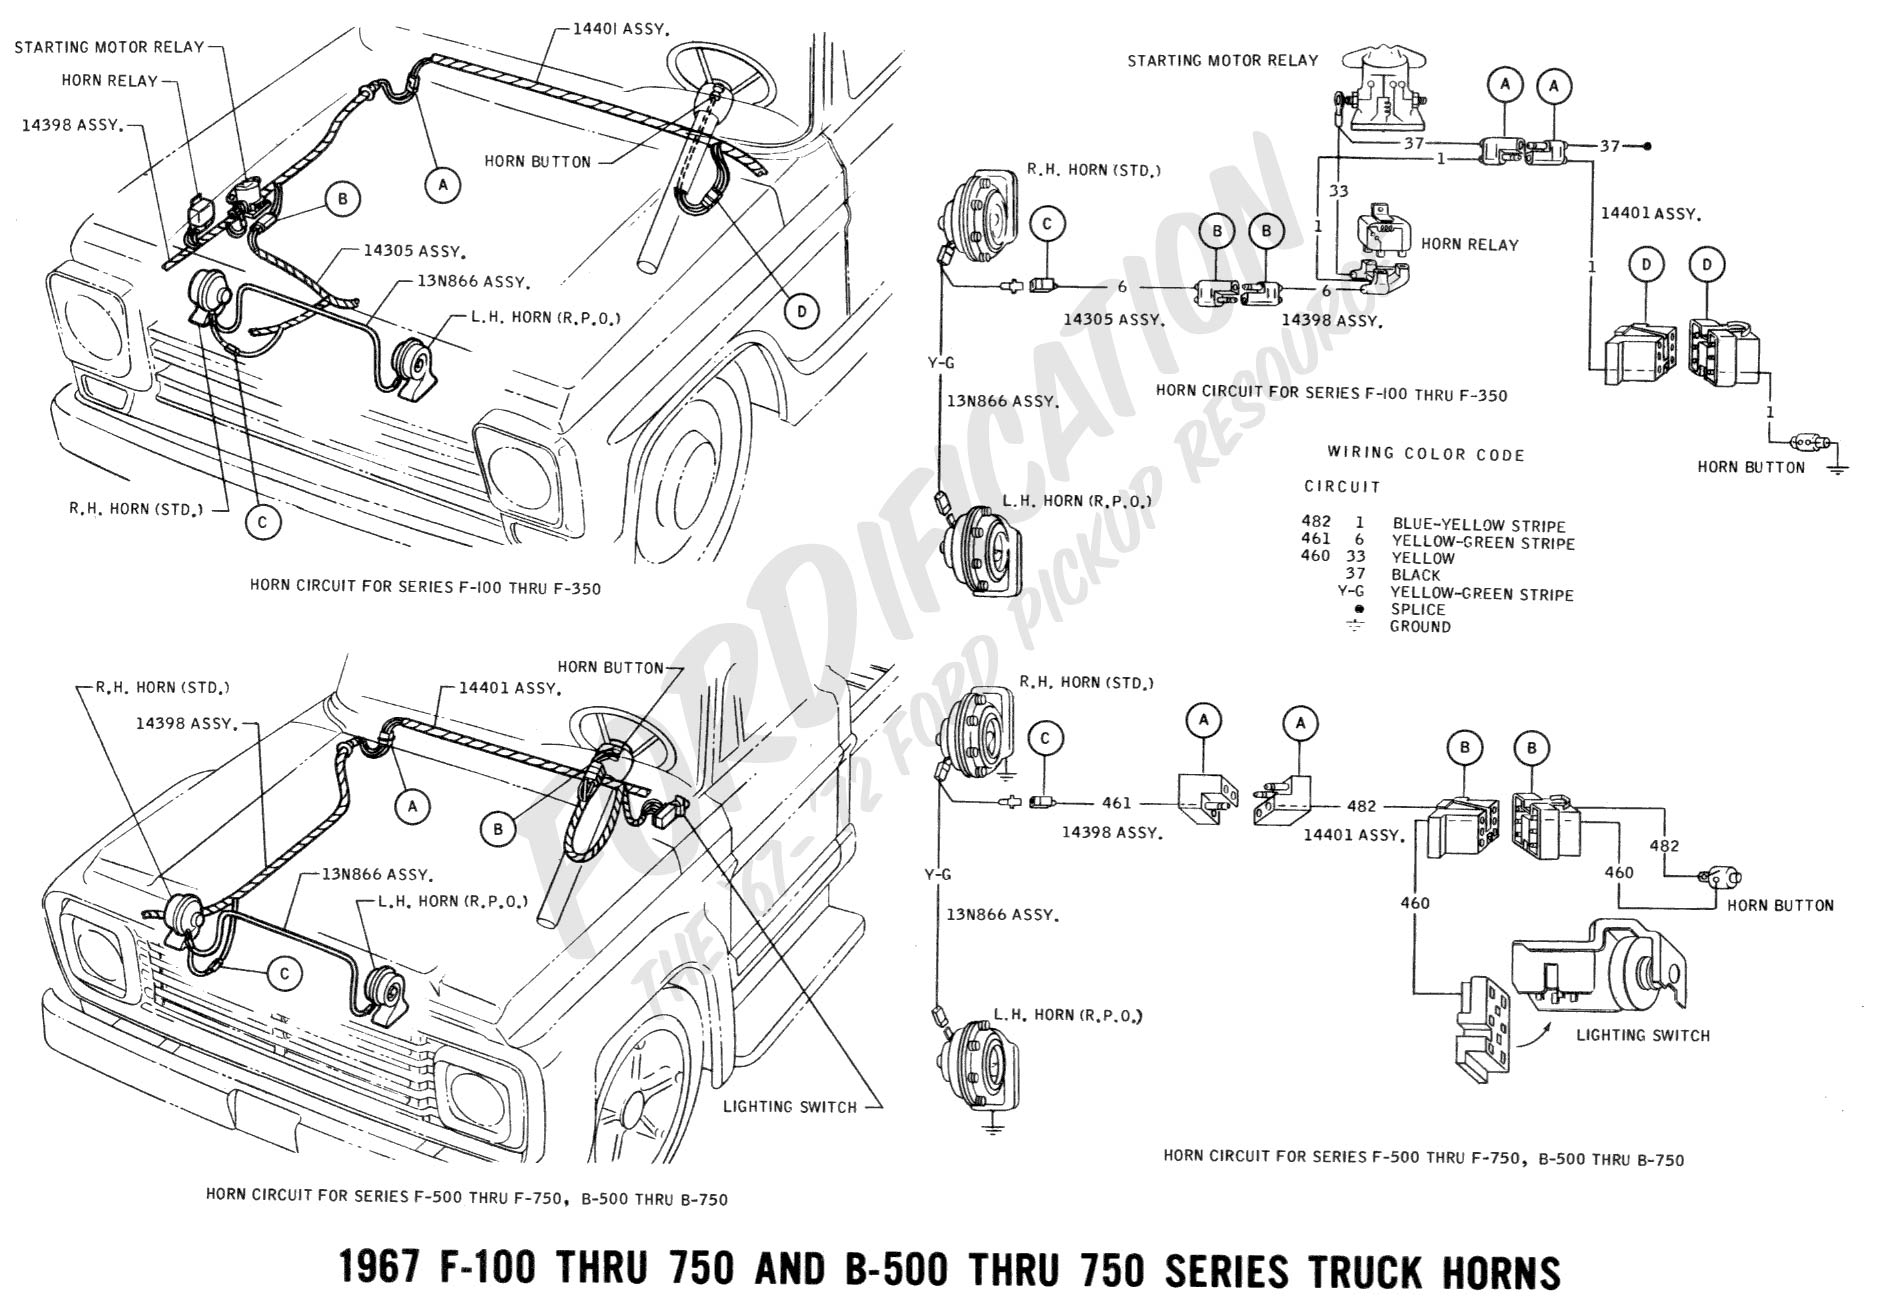 67 ford wiring harness wiring diagram 1982 Ford F150 Wiring Diagram 67 ford wiring harness yhu vinylcountdowndisco uk \\u20221967 f 100 wiring harness wiring diagram rh